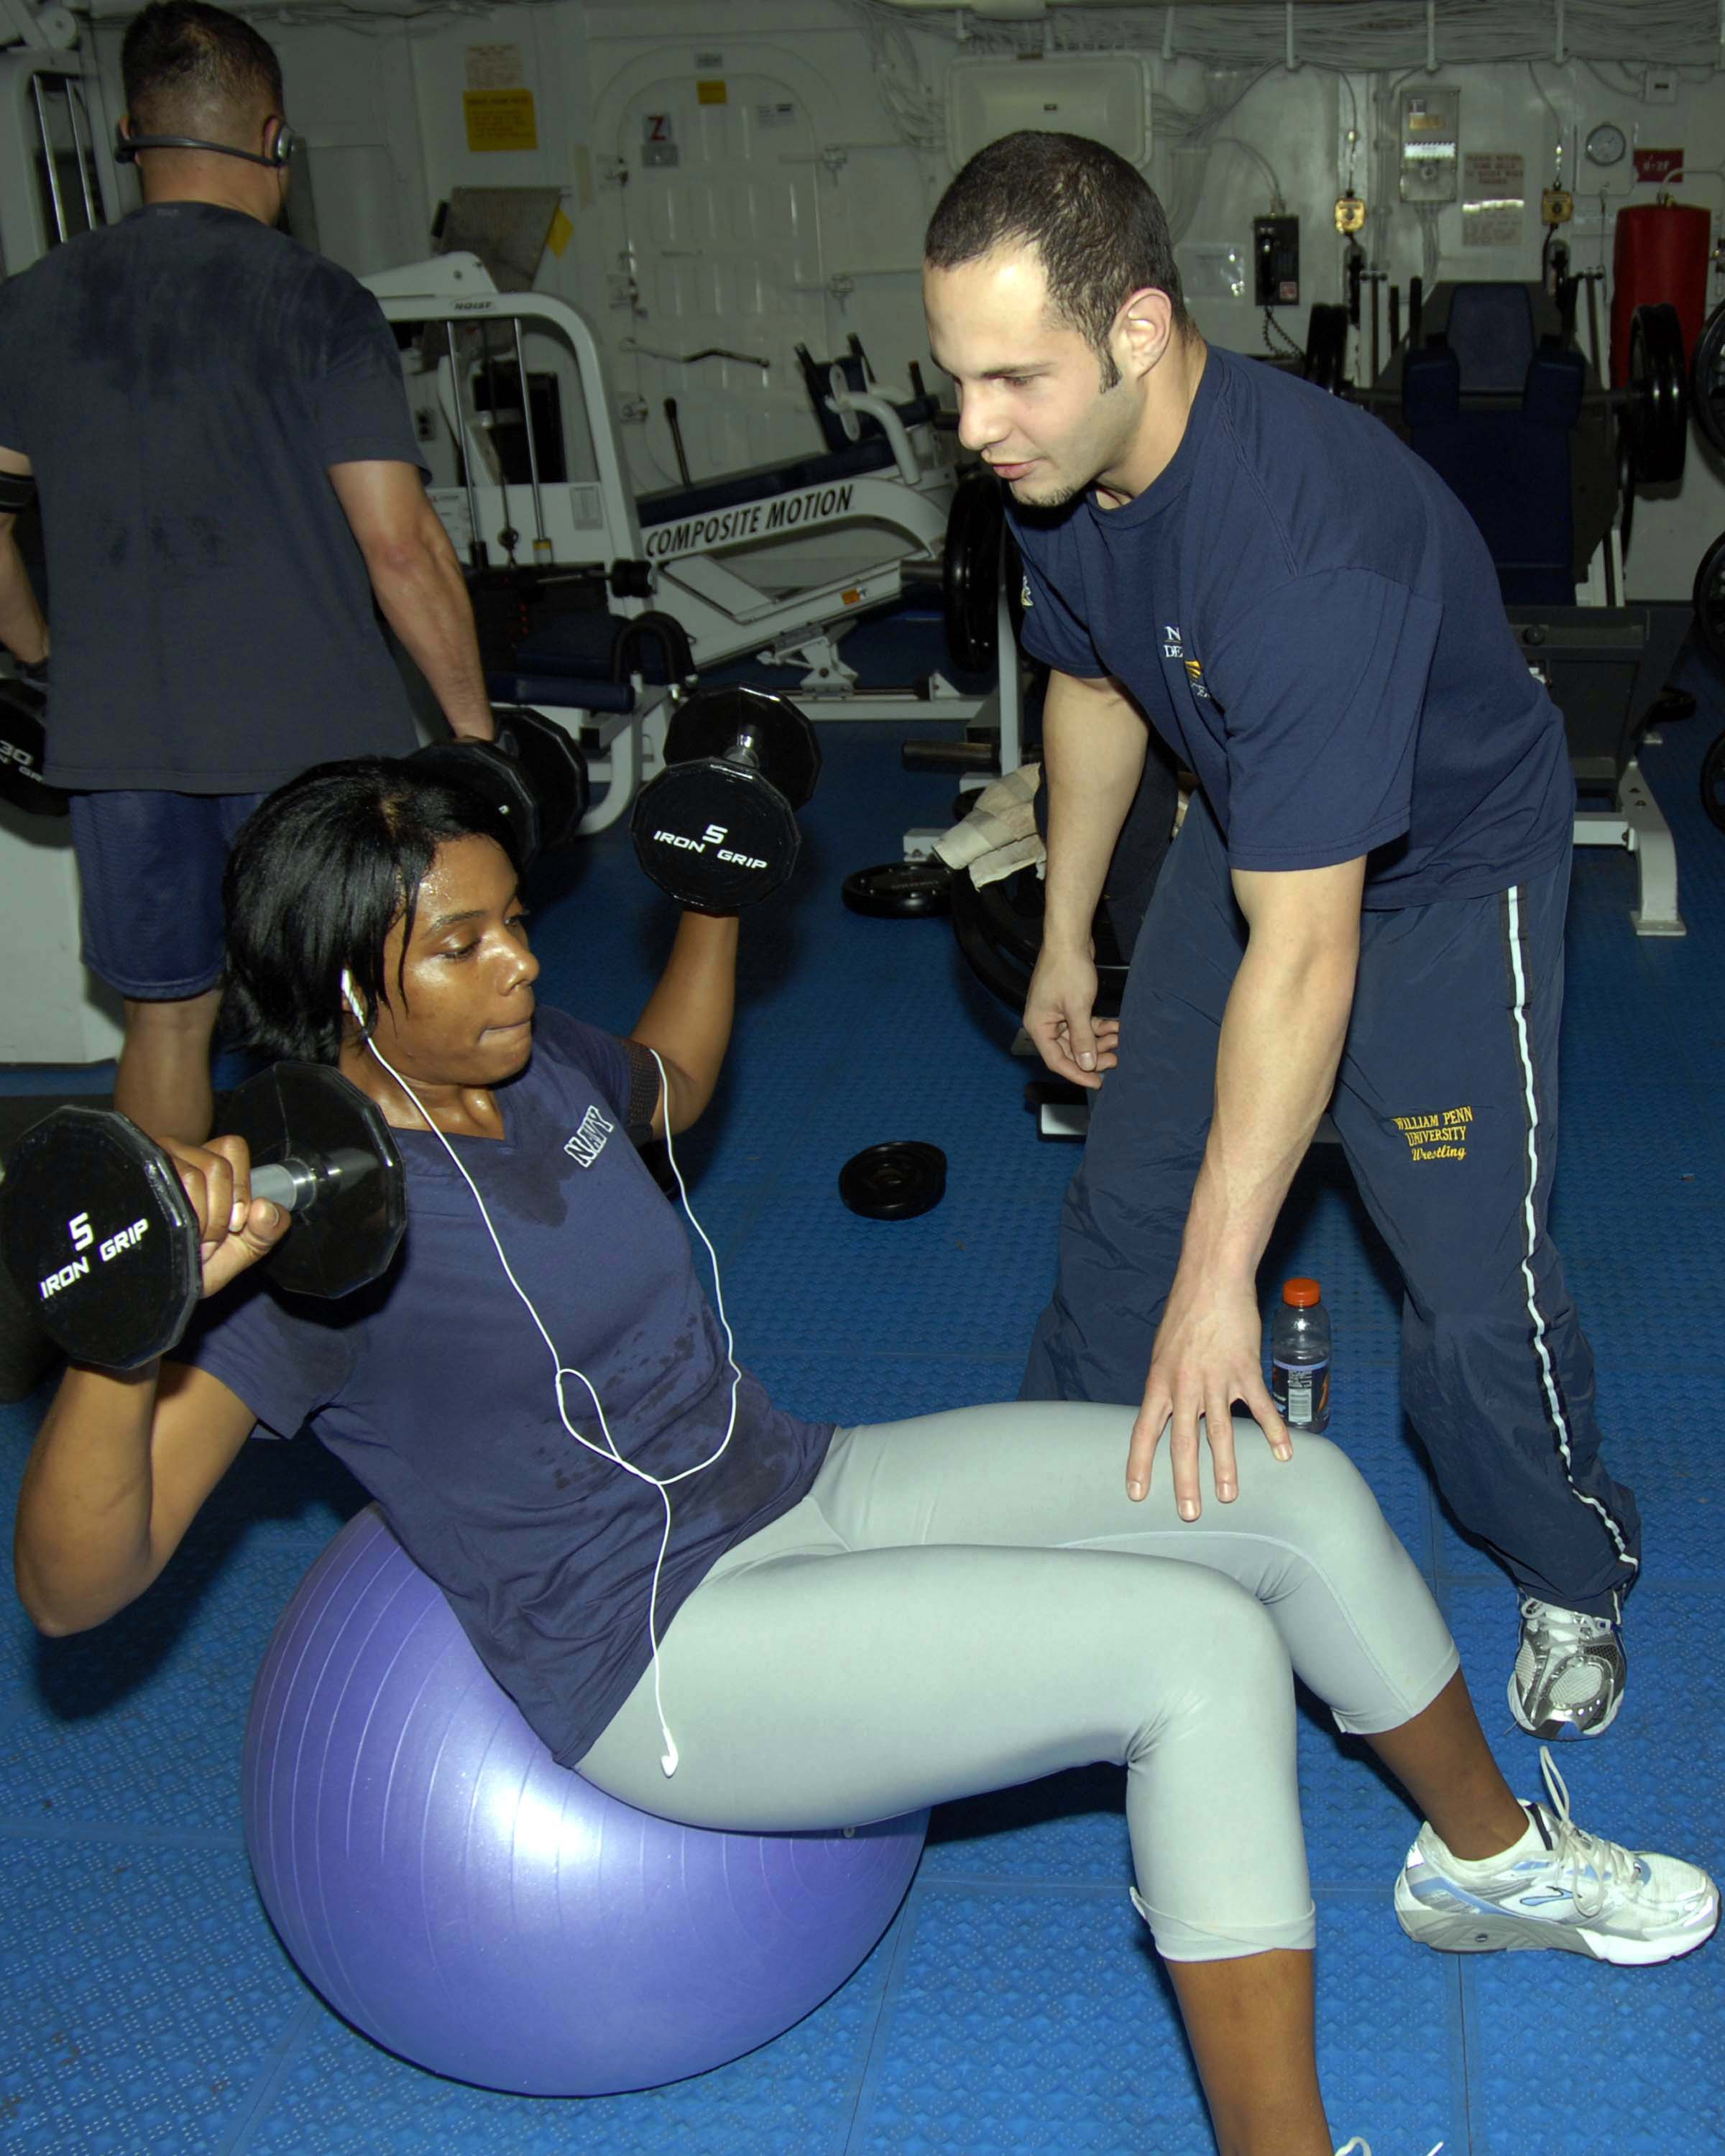 File Weighted sit ups on an exercise ball Wikimedia mons